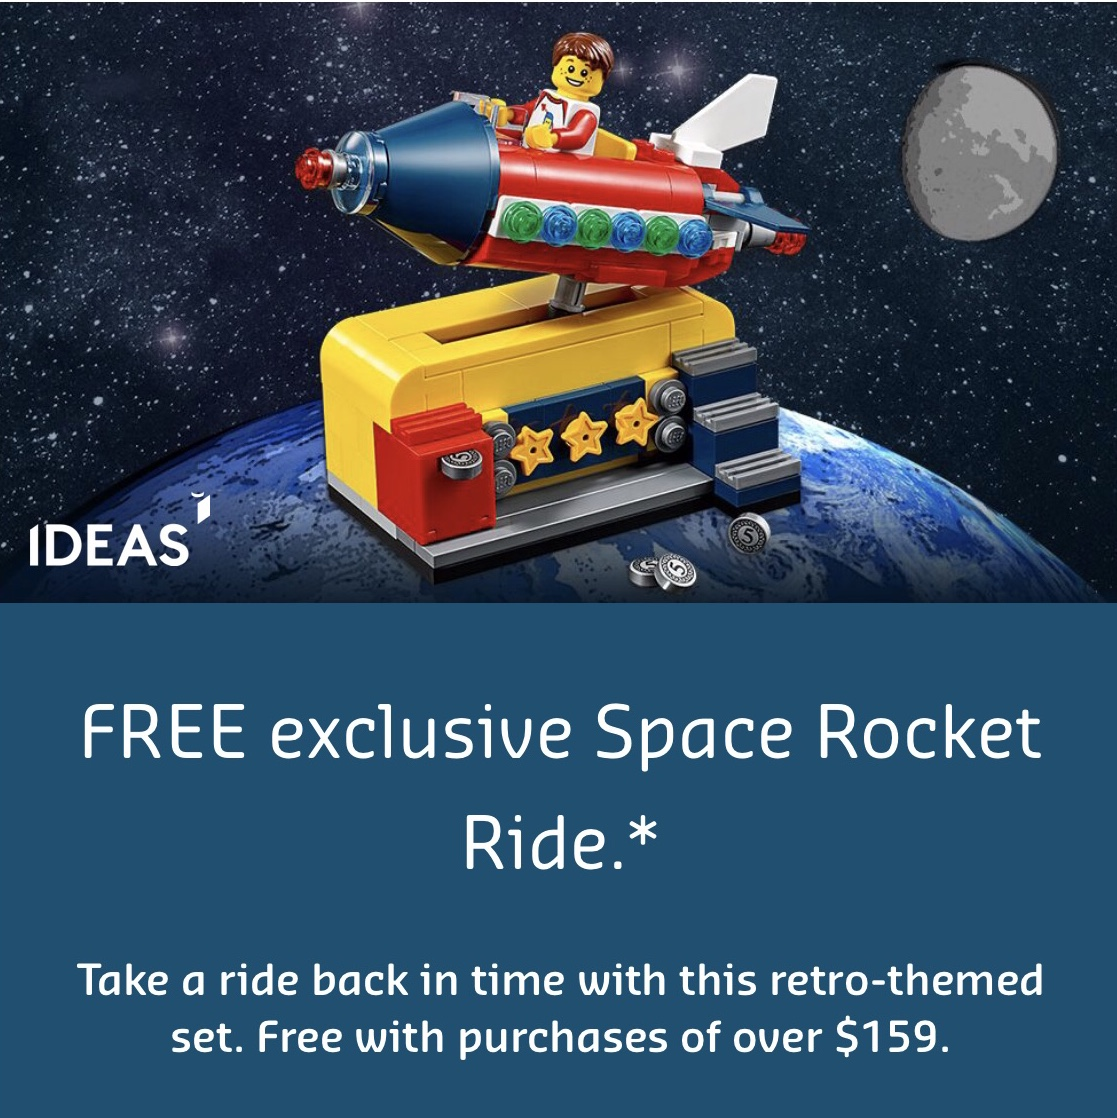 Space Rocket Ride